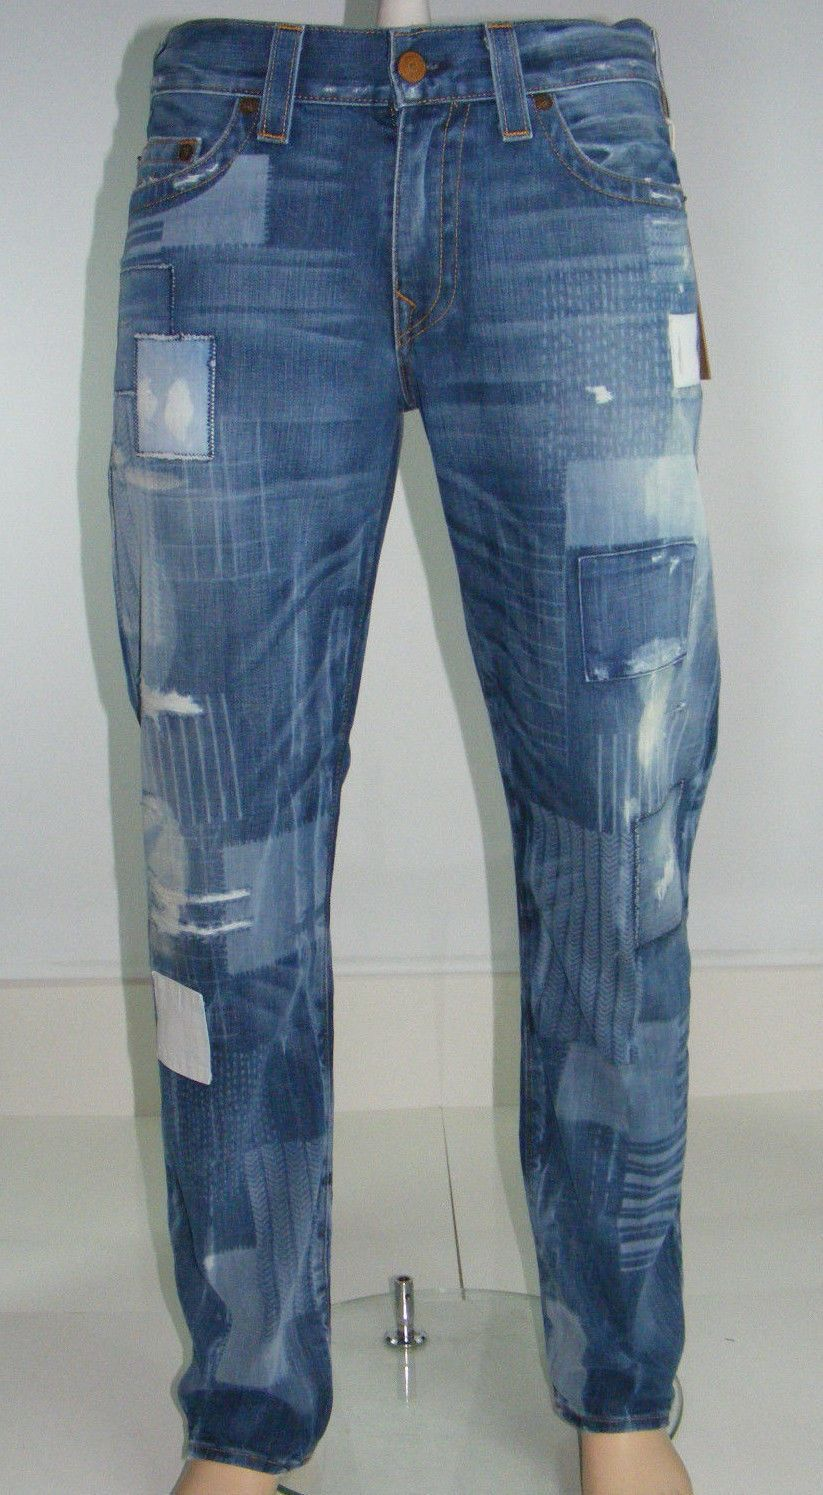 93cadcab9fe4 True Religion Mens Geno Relaxed Slim Graphic Patchwork Jeans Size 36 x 34    eBay